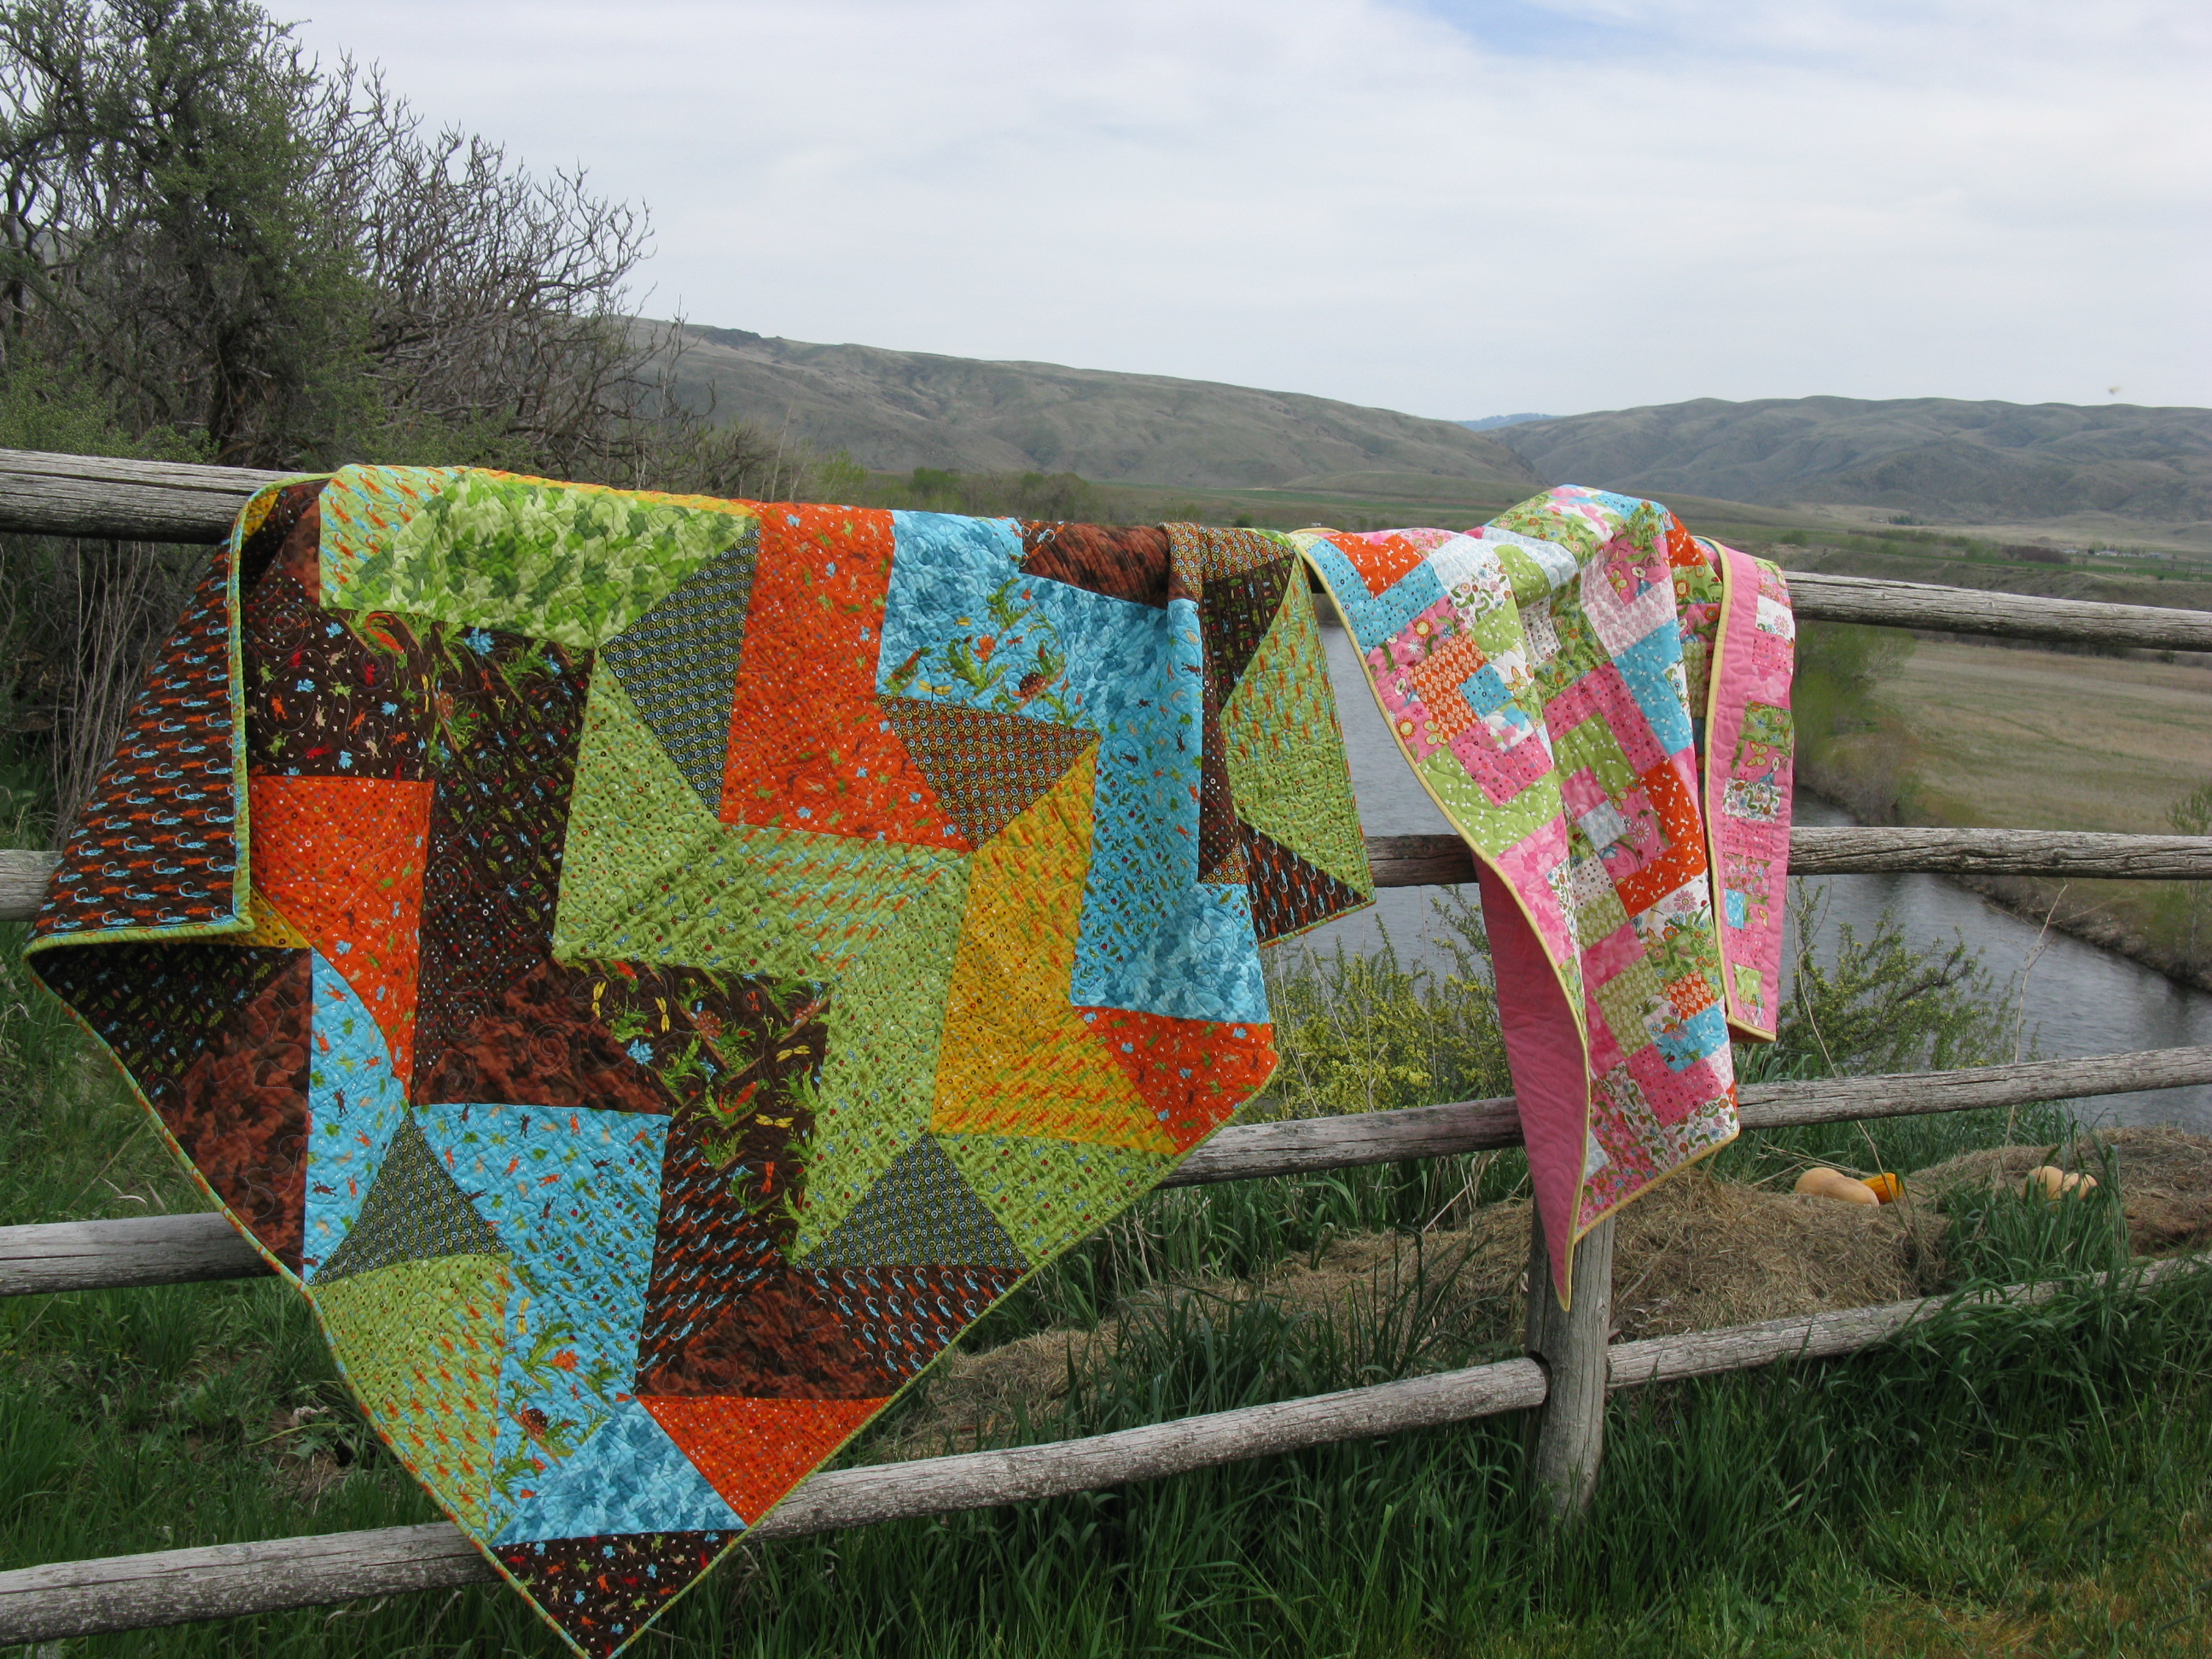 Quilts on a fence